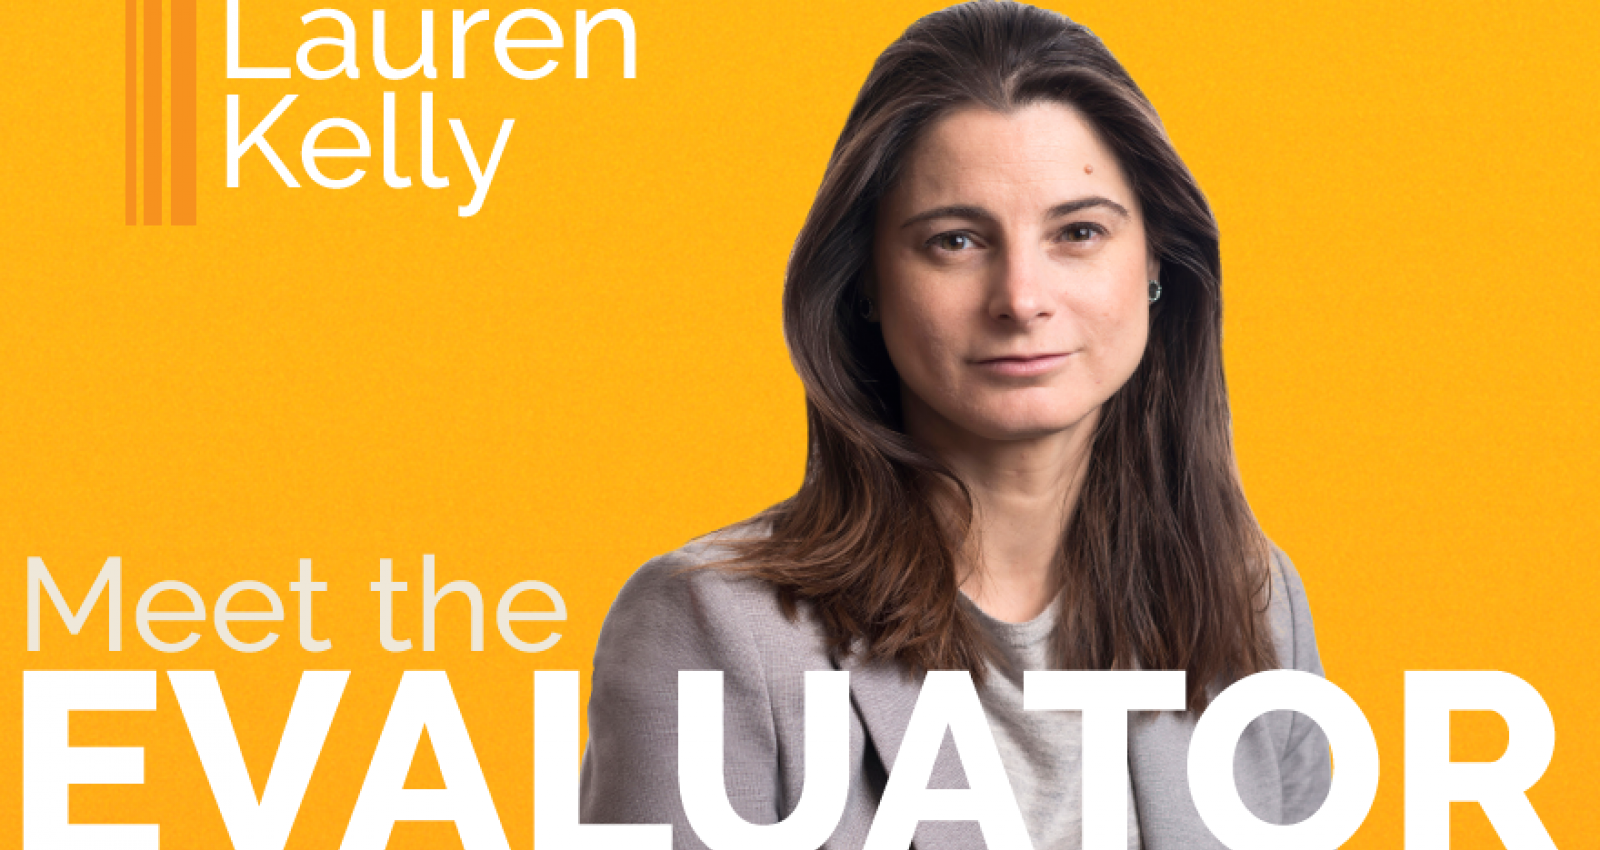 Meet the Evaluator: Lauren Kelly